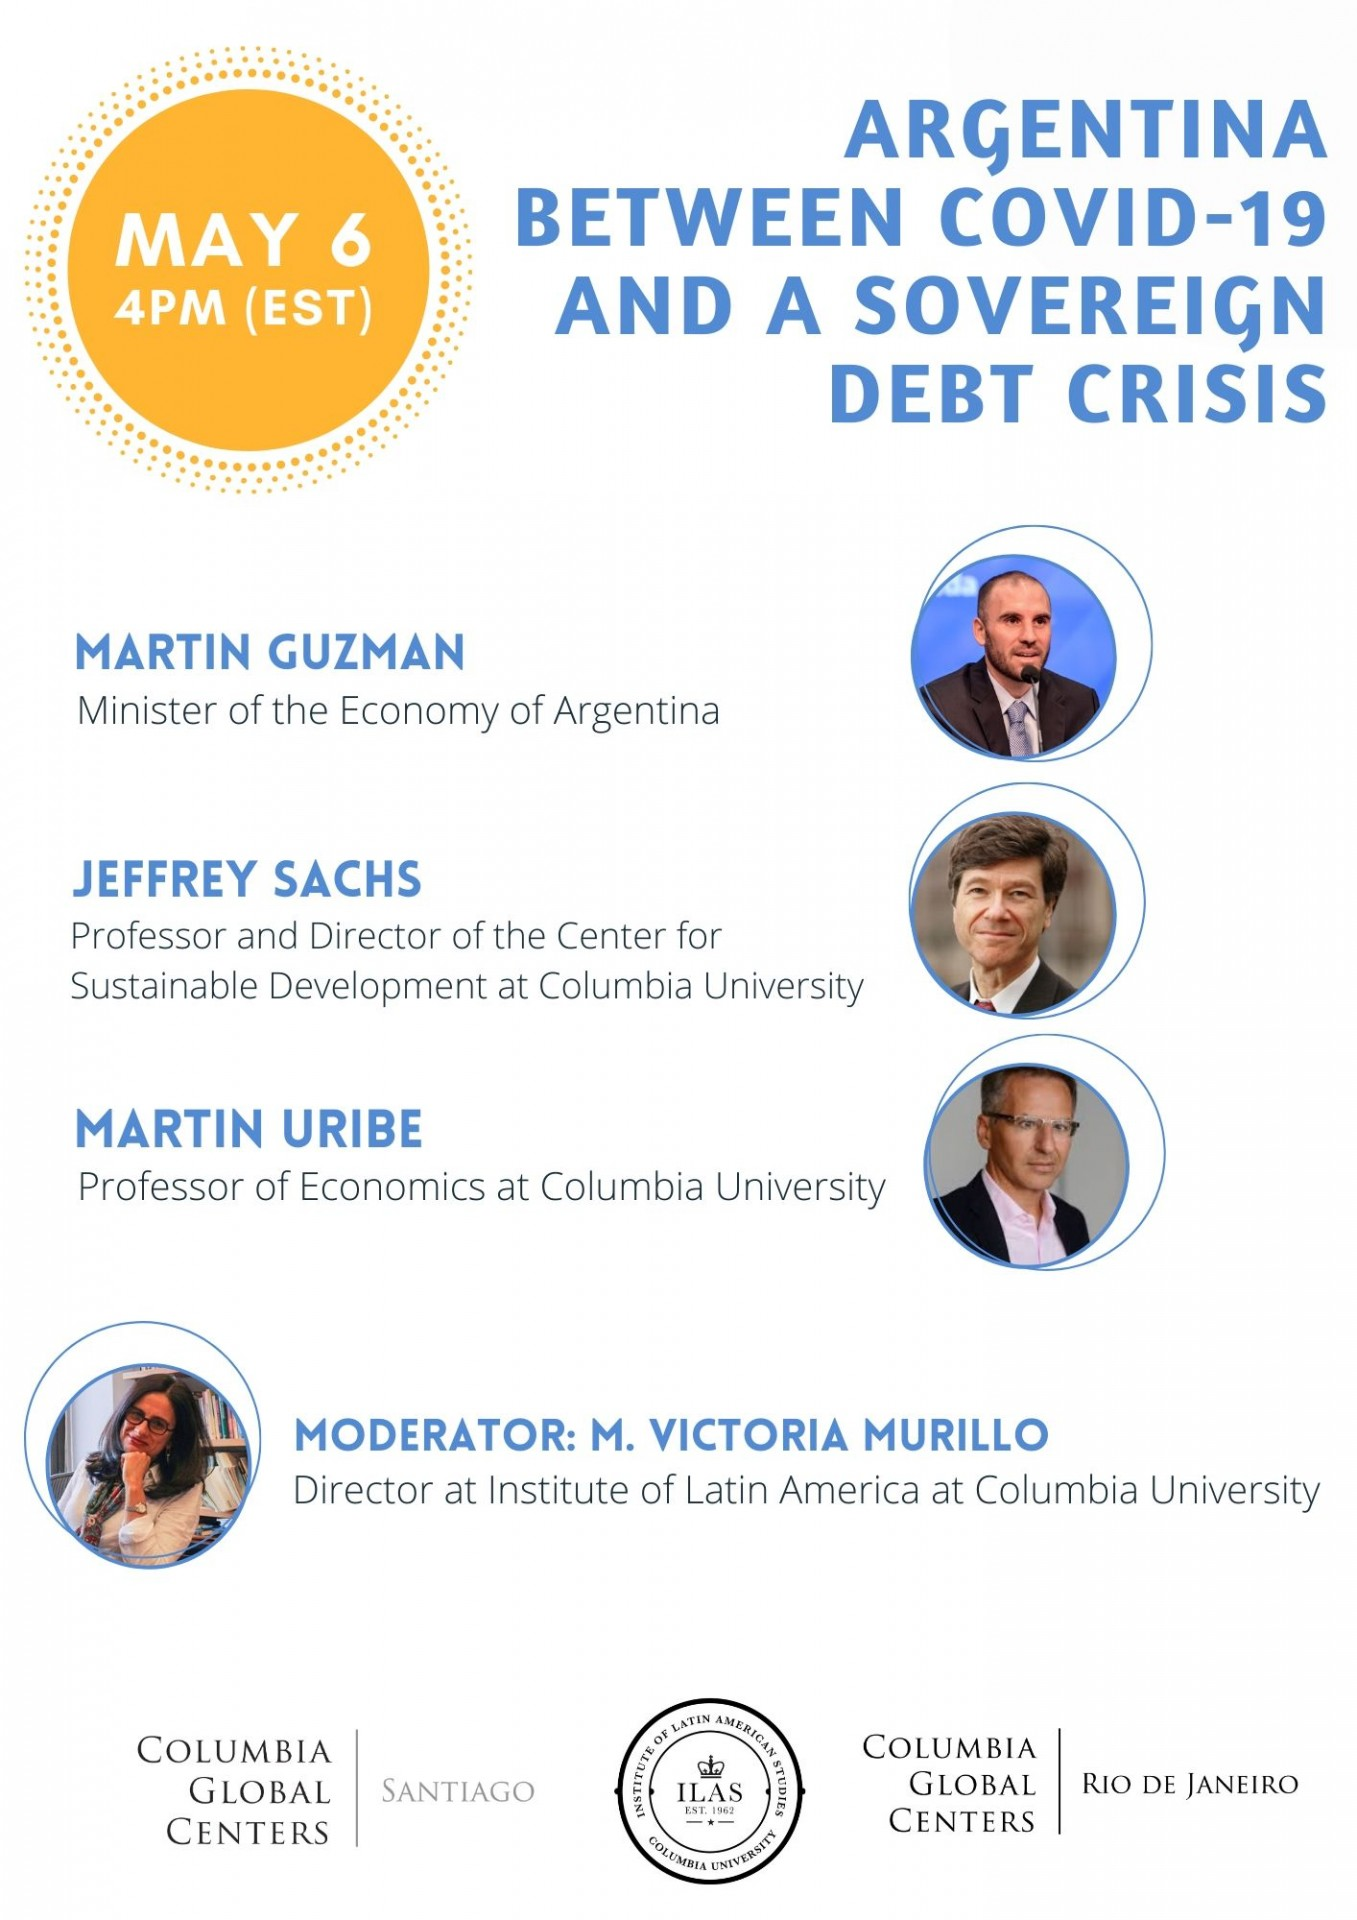 Argentina between COVID19 and a sovereign debt crisis